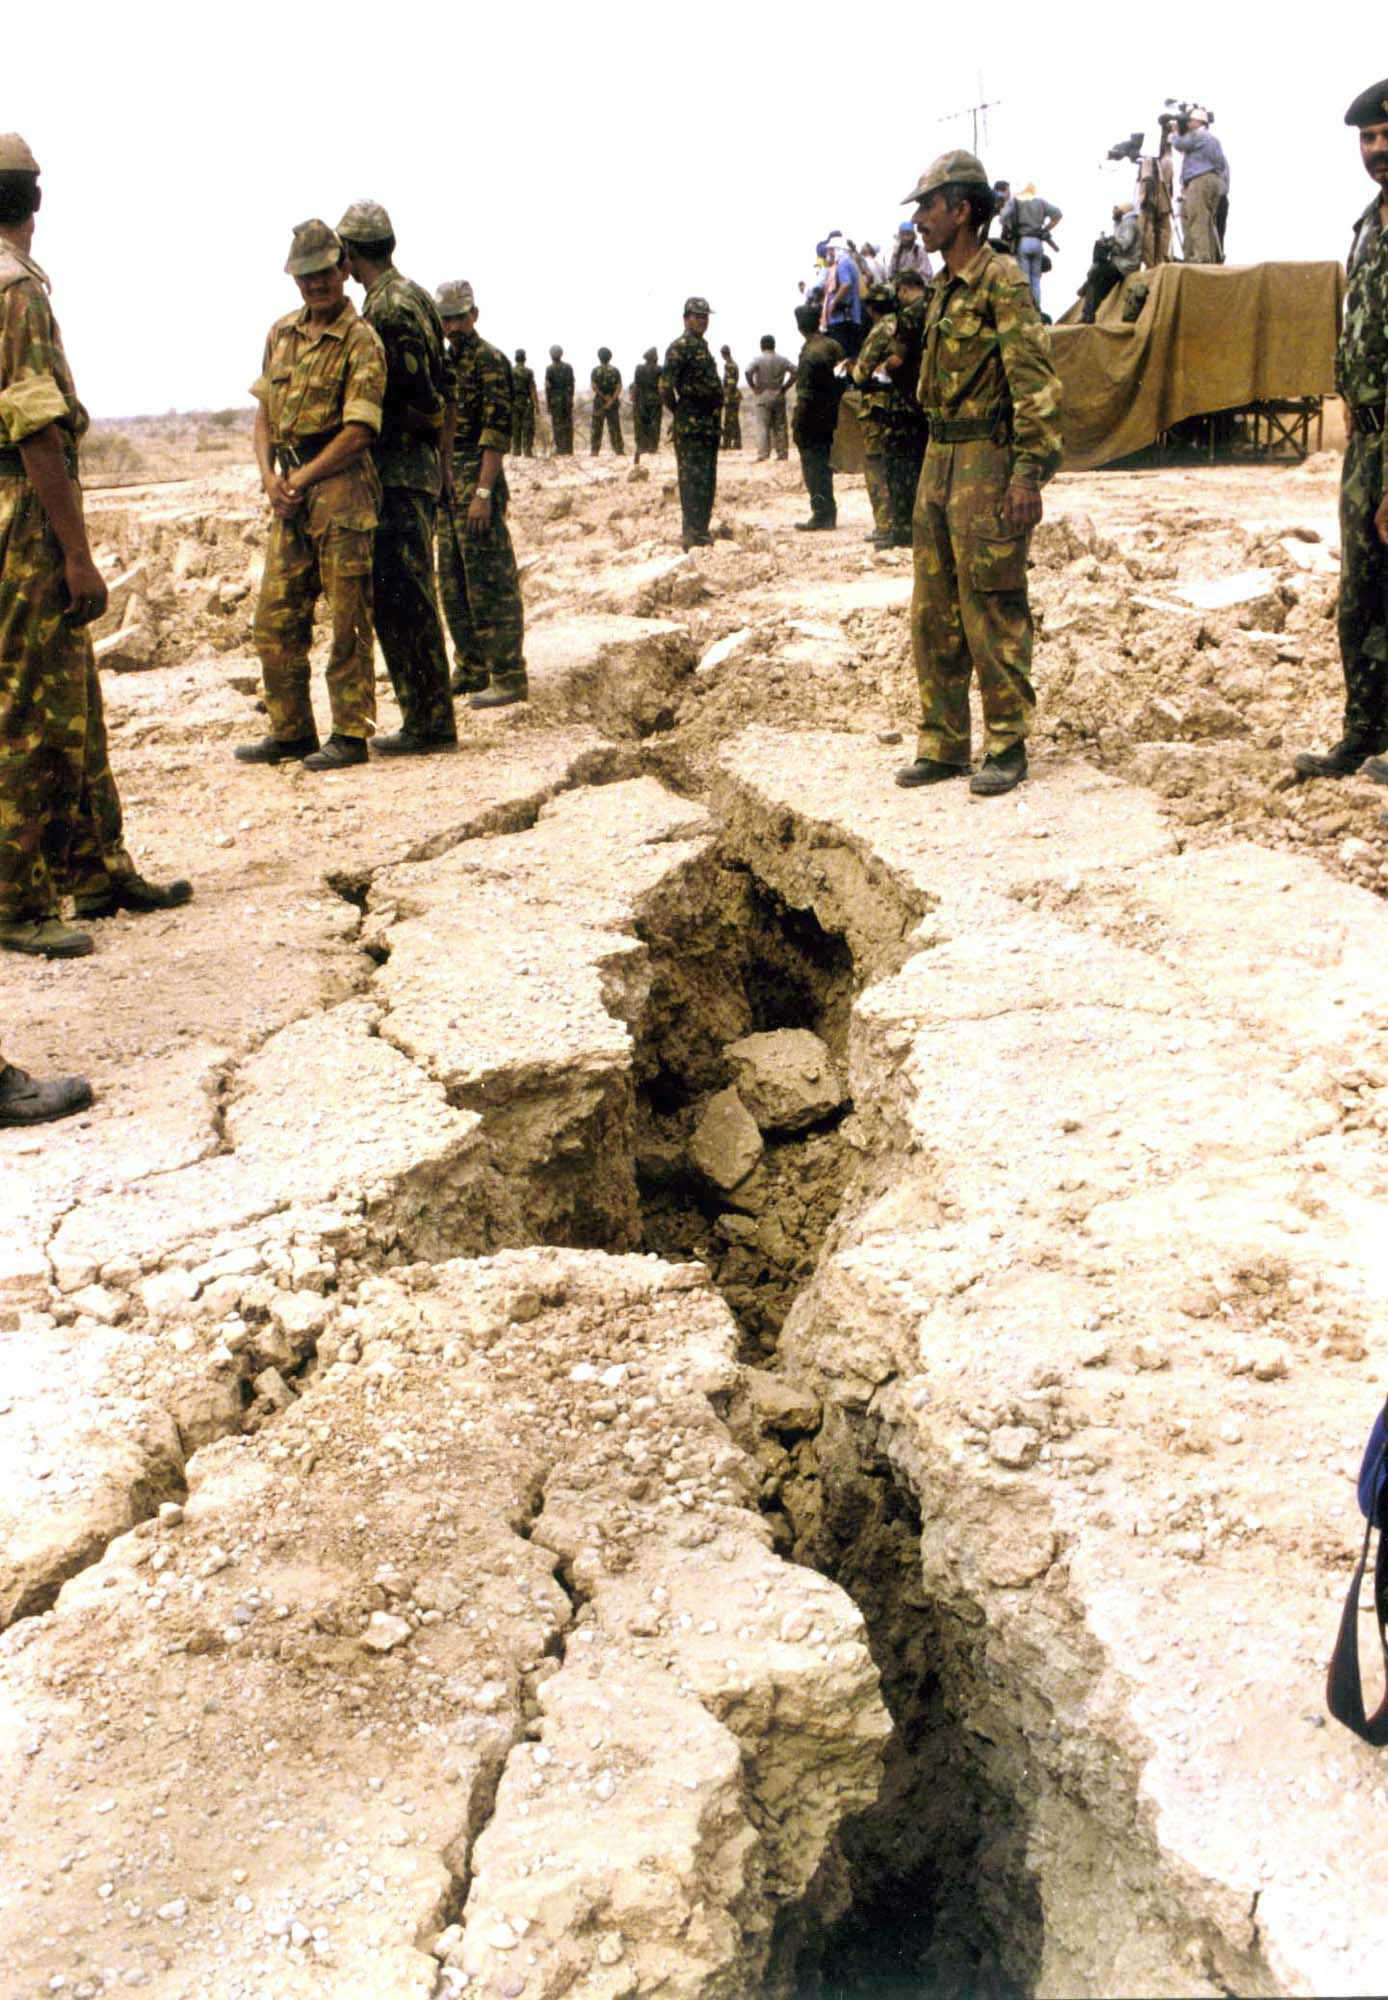 <b>1998:</b> India began nuclear testing in Pokhran in 1998, despite strong condemnation from the US. President Bill Clinton imposed economic sanctions against India.